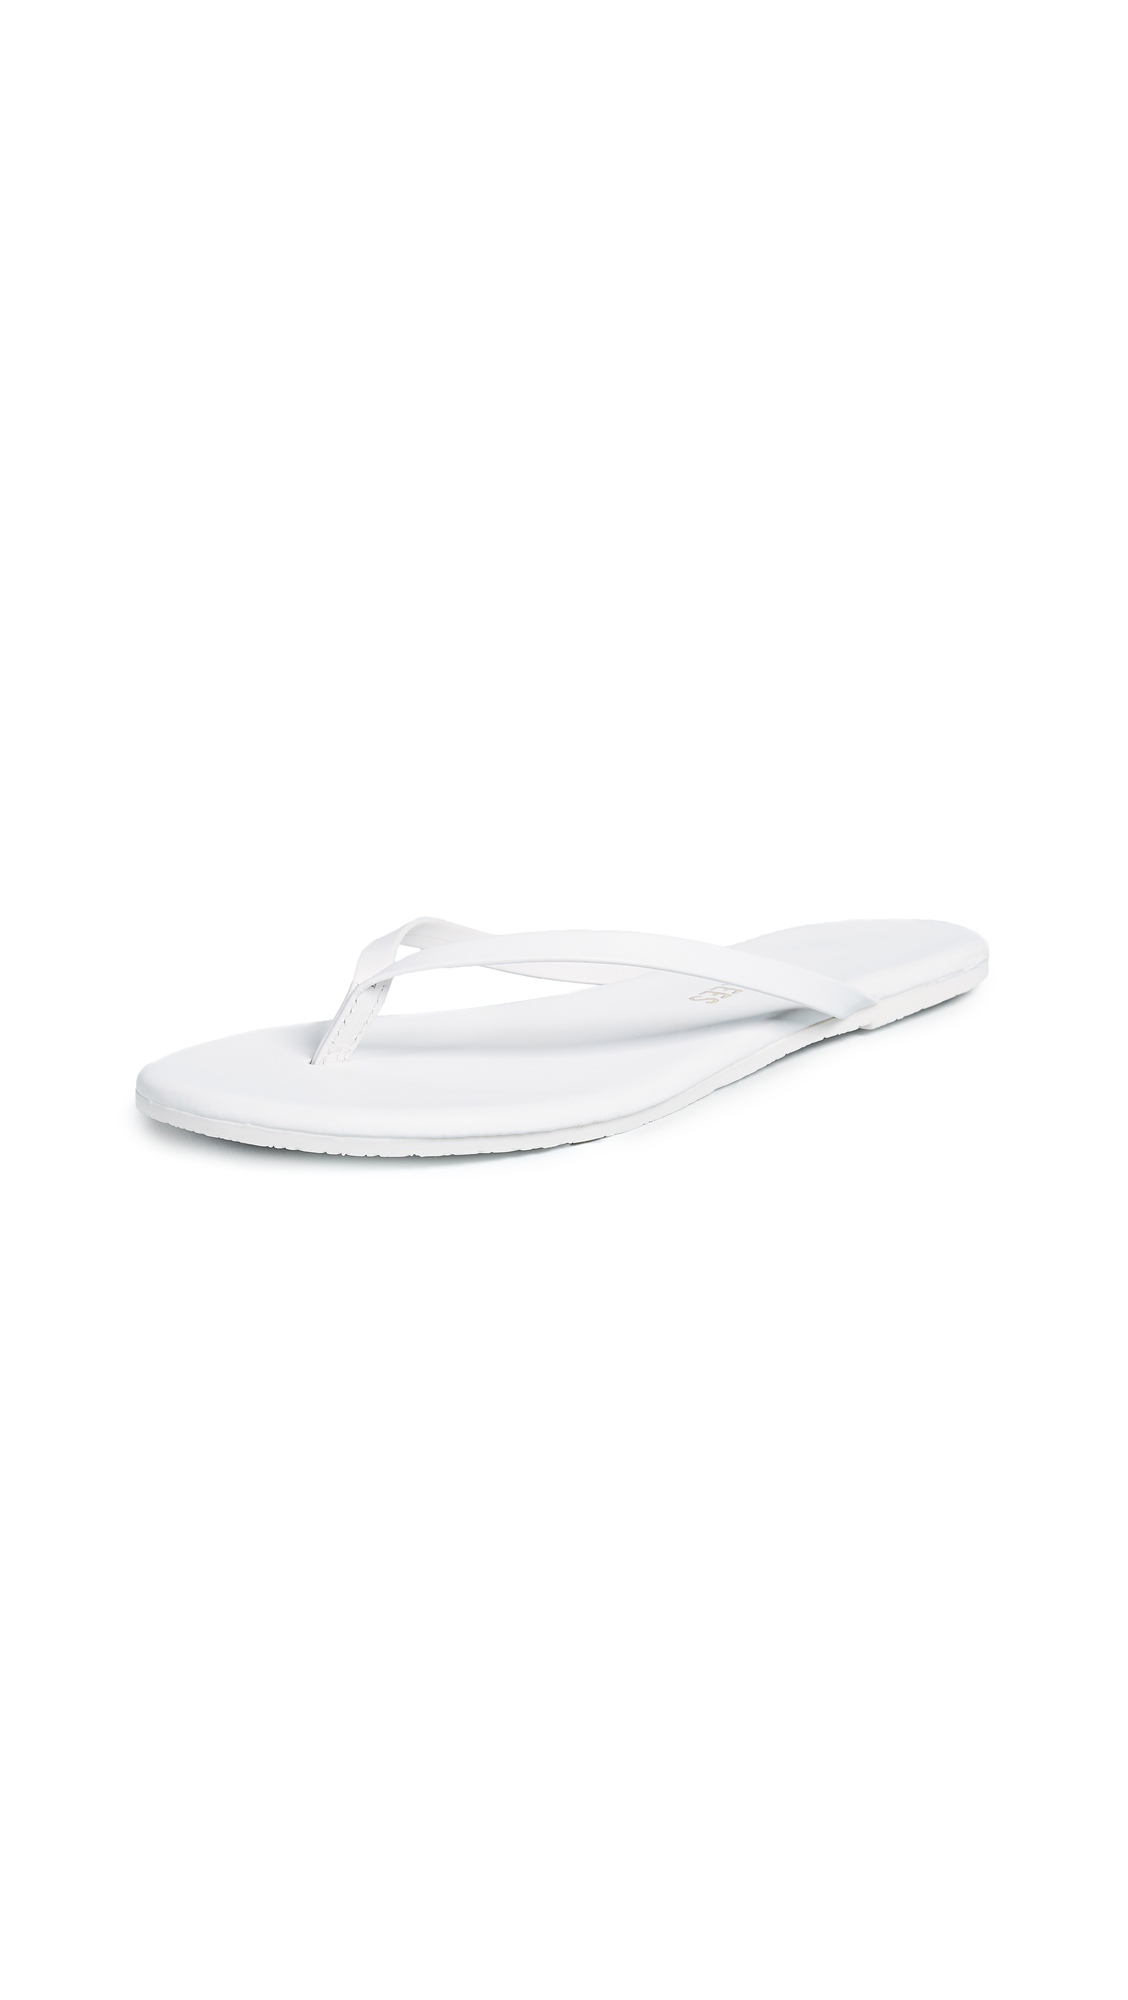 TKEES Solids Flip Flops - No. 1